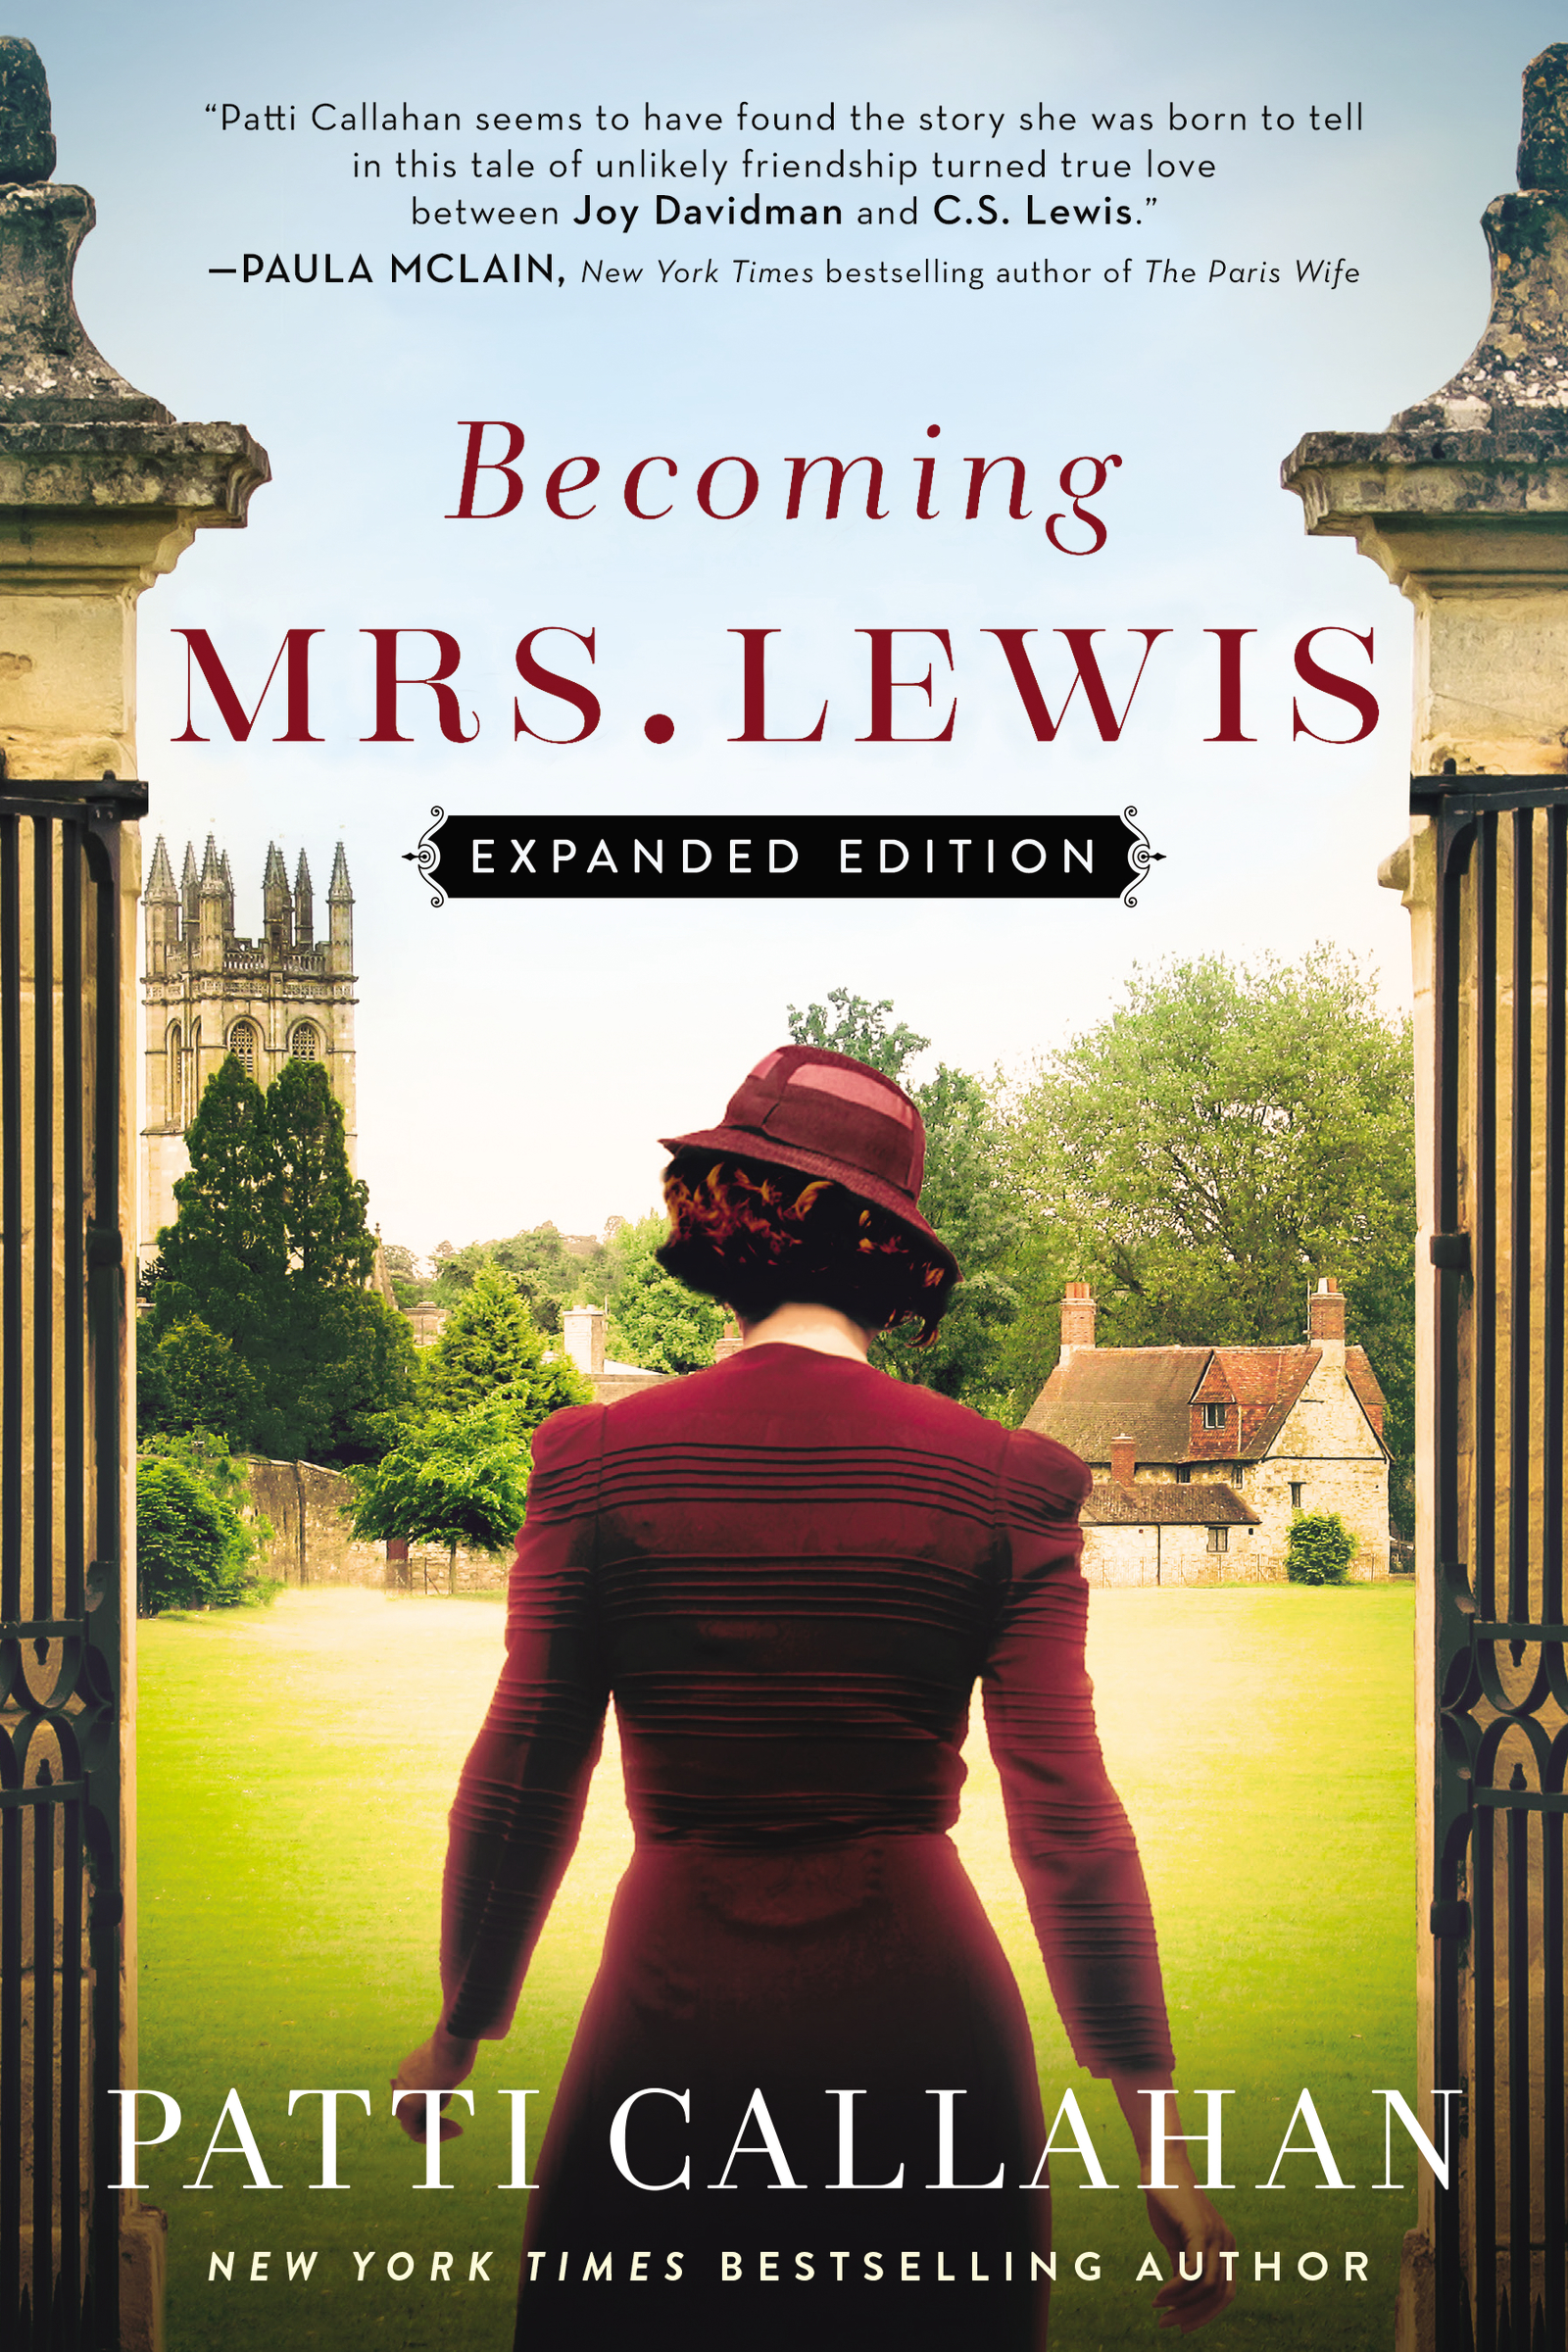 Becoming Mrs. Lewis [electronic resource] : The Improbable Love Story of Joy Davidman and C. S. Lewis